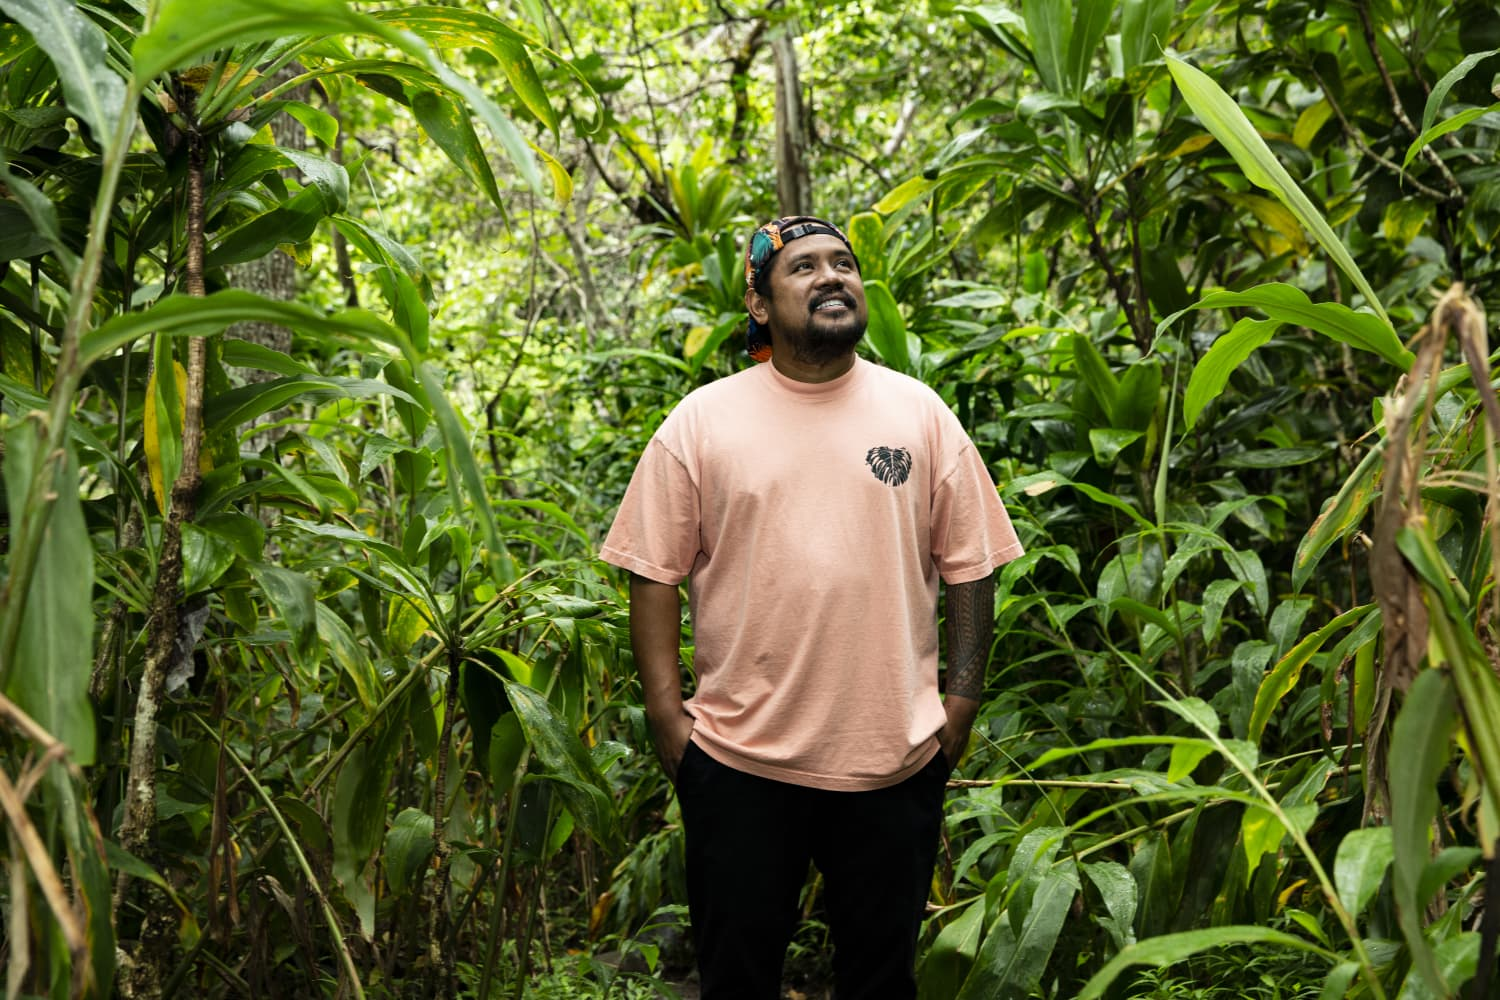 Celebrity Chef Sheldon Simeon on Weeknight Dinner Strategies, the Importance of Pre-Dinner Snacks, and His Favorite Hawaiian Dishes